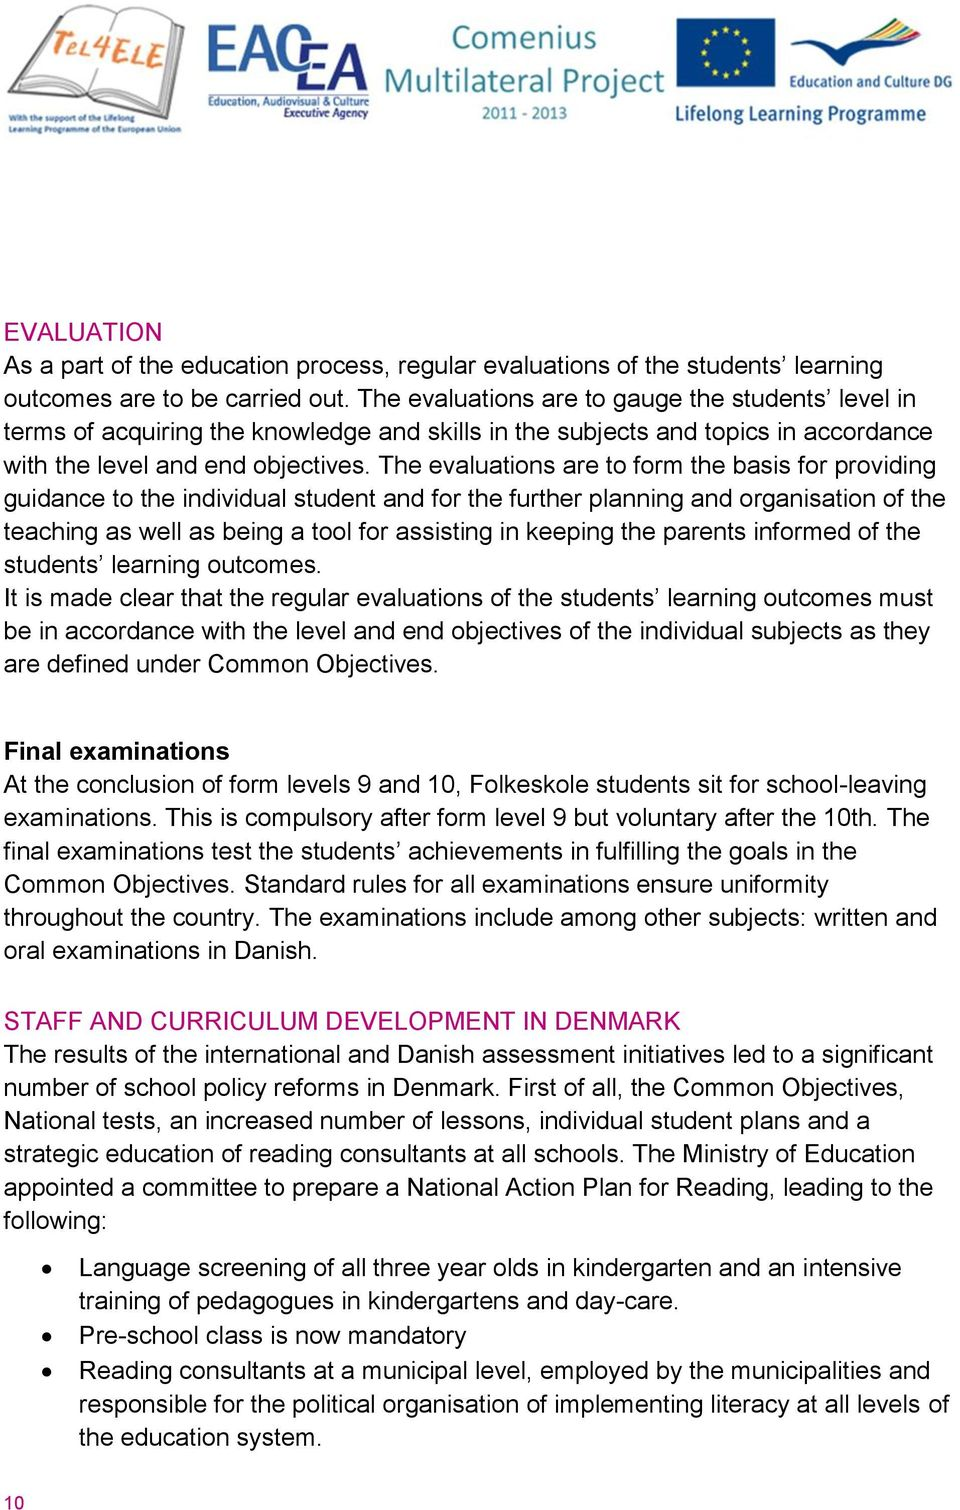 The evaluations are to form the basis for providing guidance to the individual student and for the further planning and organisation of the teaching as well as being a tool for assisting in keeping